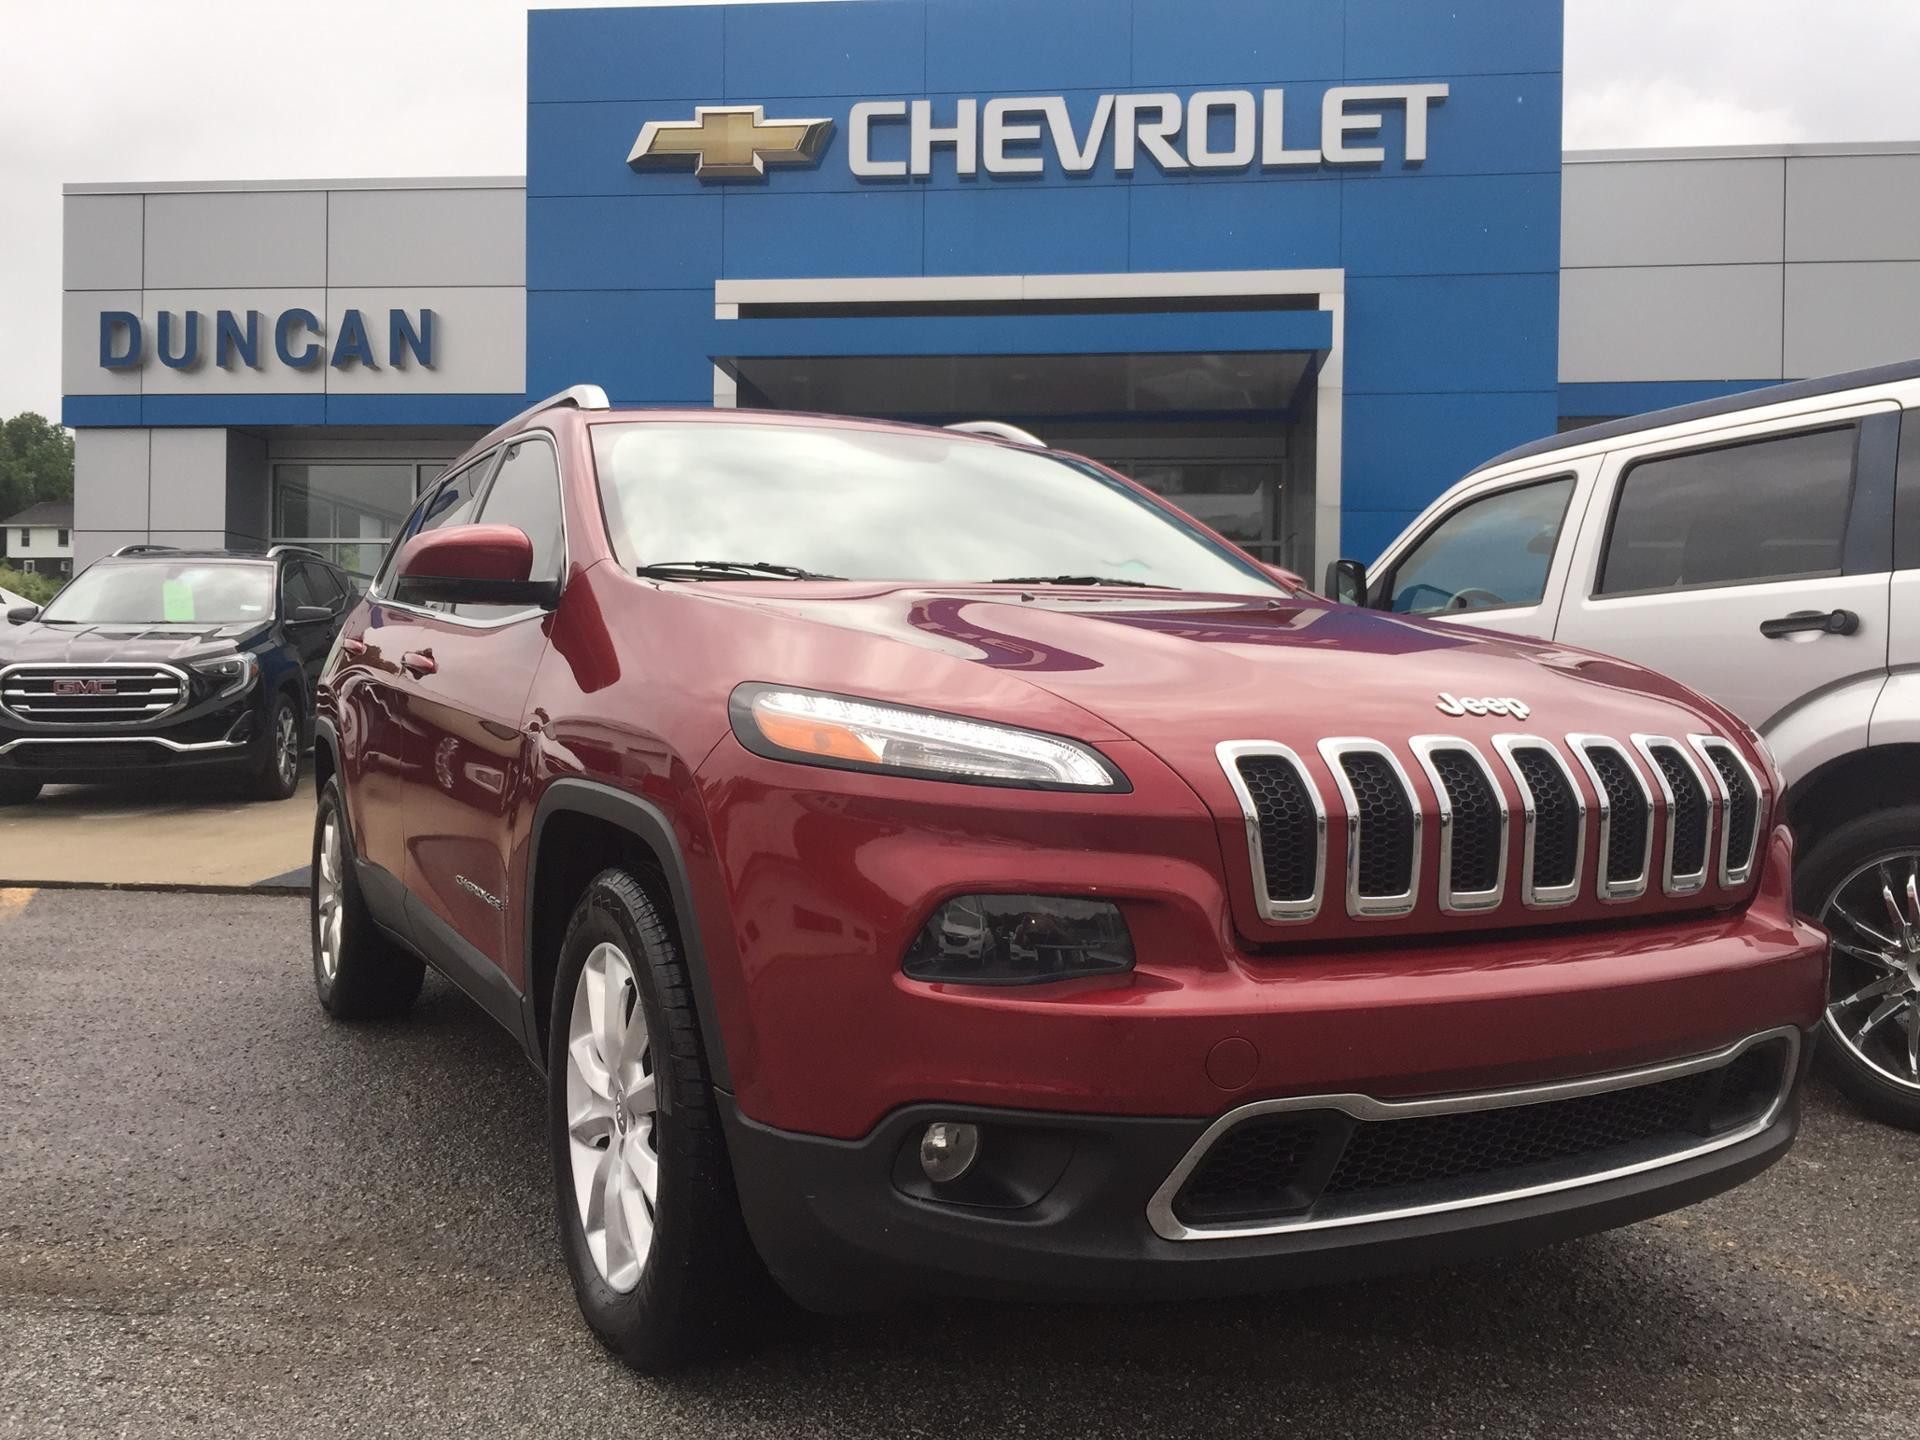 duncan used cars fresh harriman used jeep liberty vehicles for sale